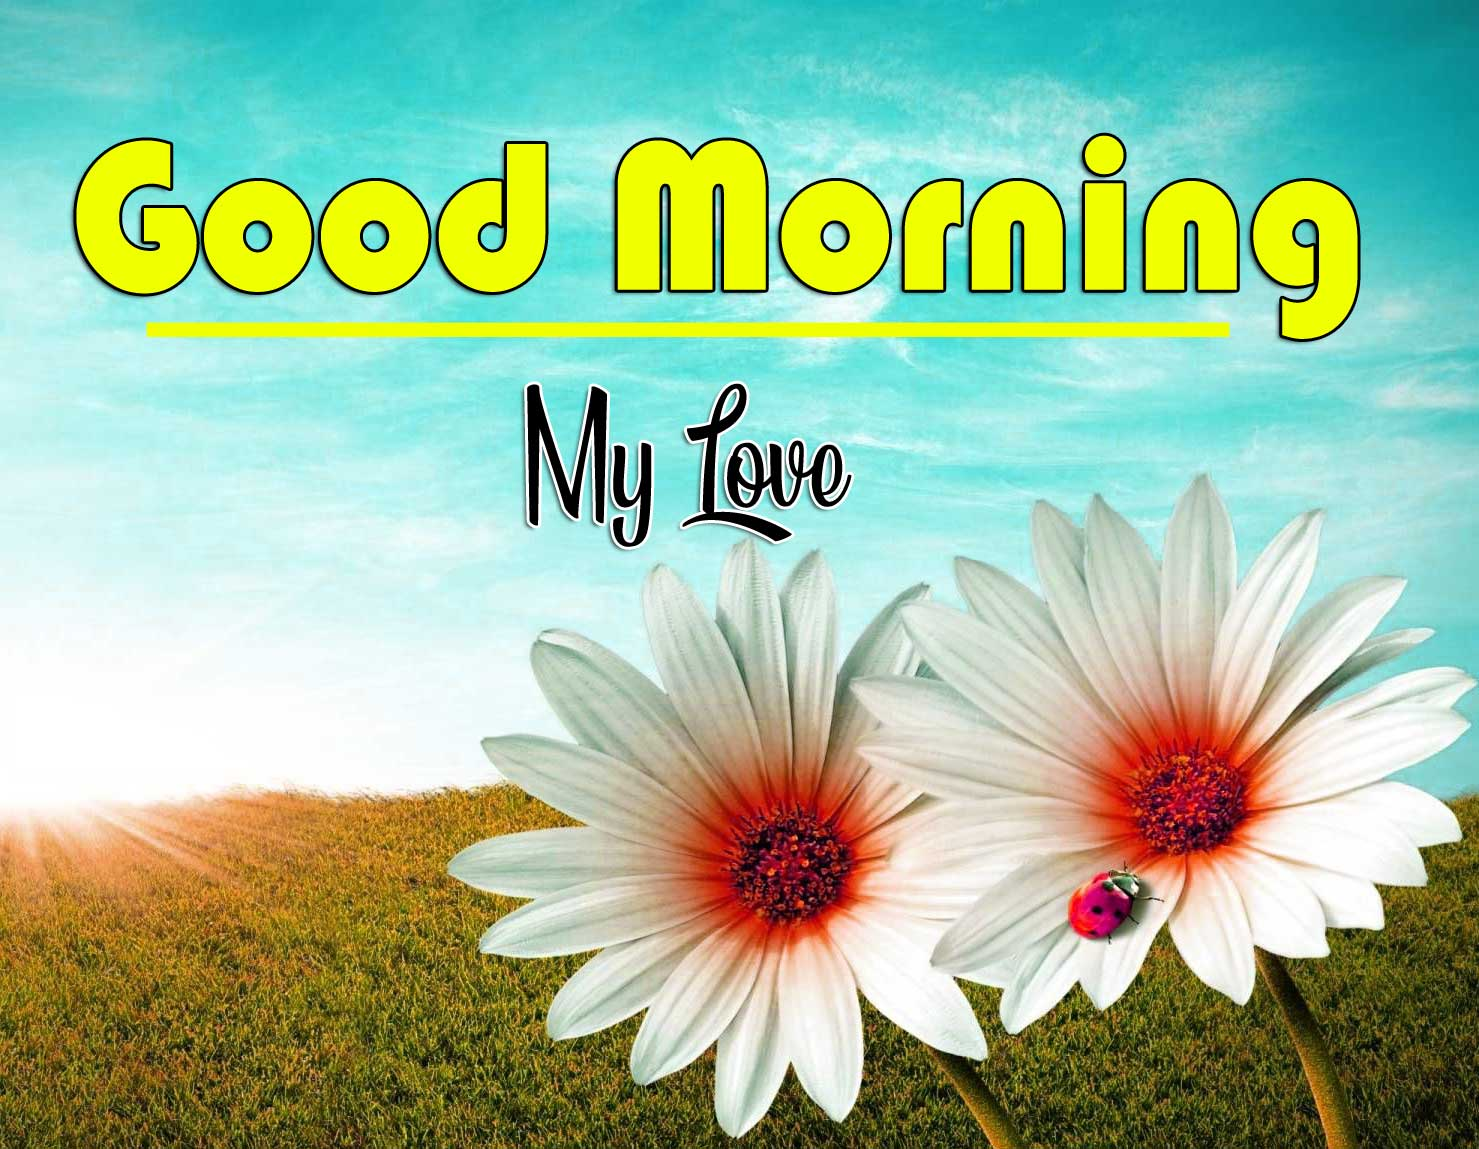 Good Morning Wishes Wallpaper Images With Flower